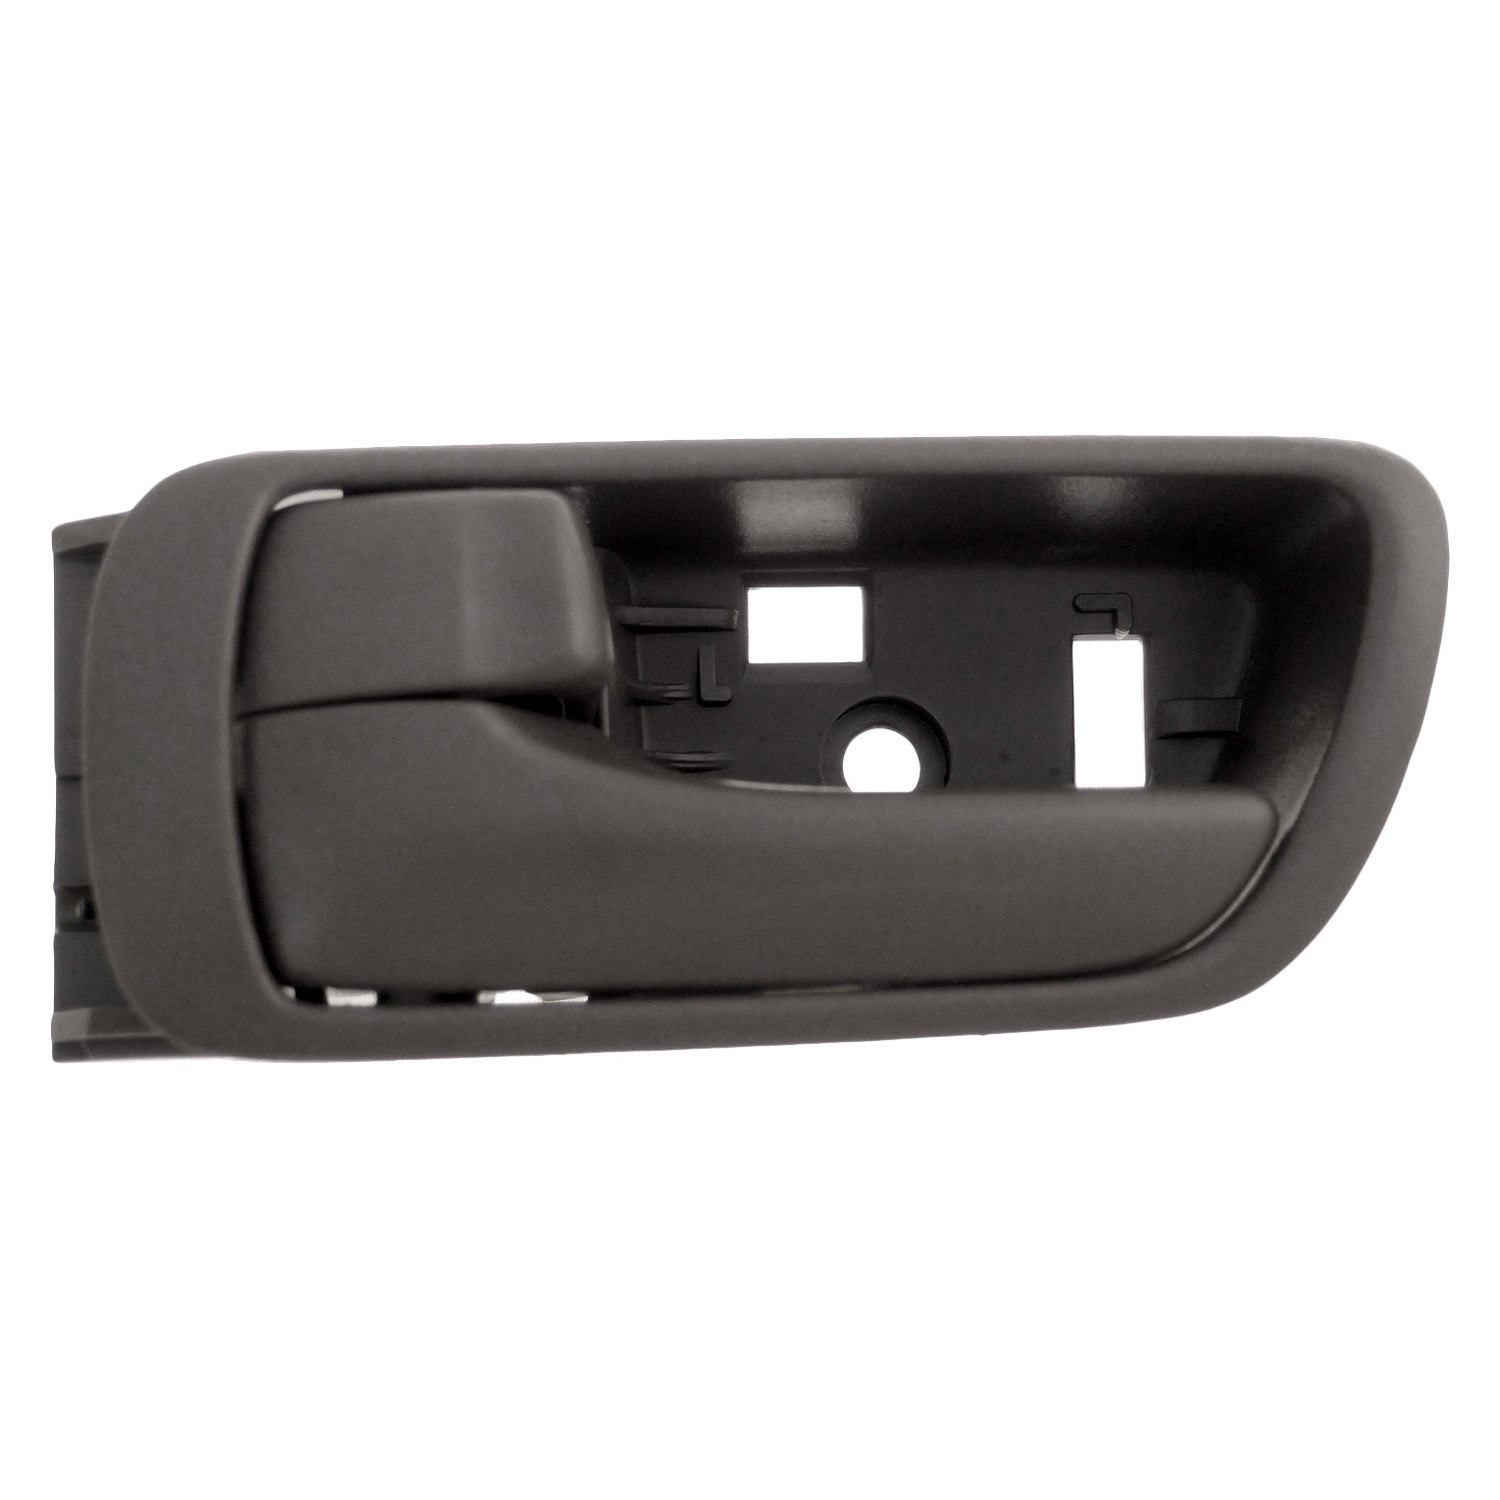 dorman toyota camry 2002 2006 interior door handle. Black Bedroom Furniture Sets. Home Design Ideas